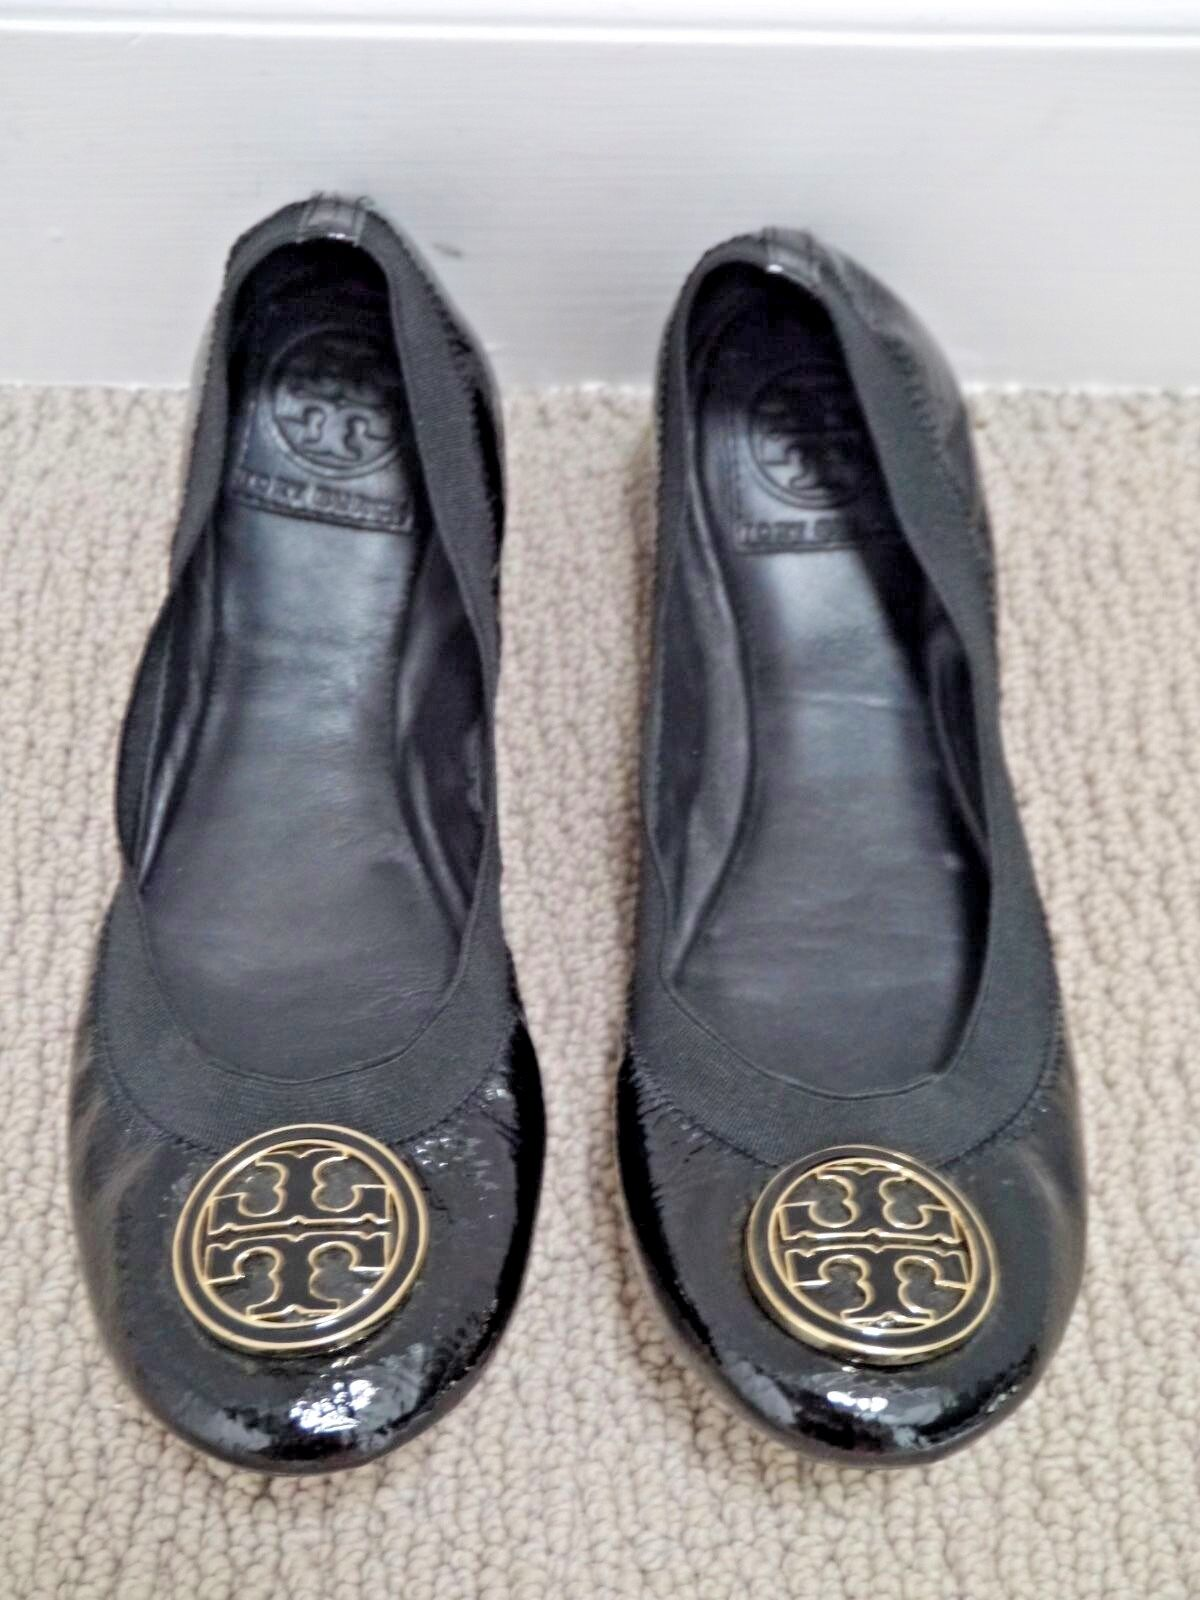 1b53d354c33 TORY BURCH Caroline Caroline black patent leather gold detail logo ...